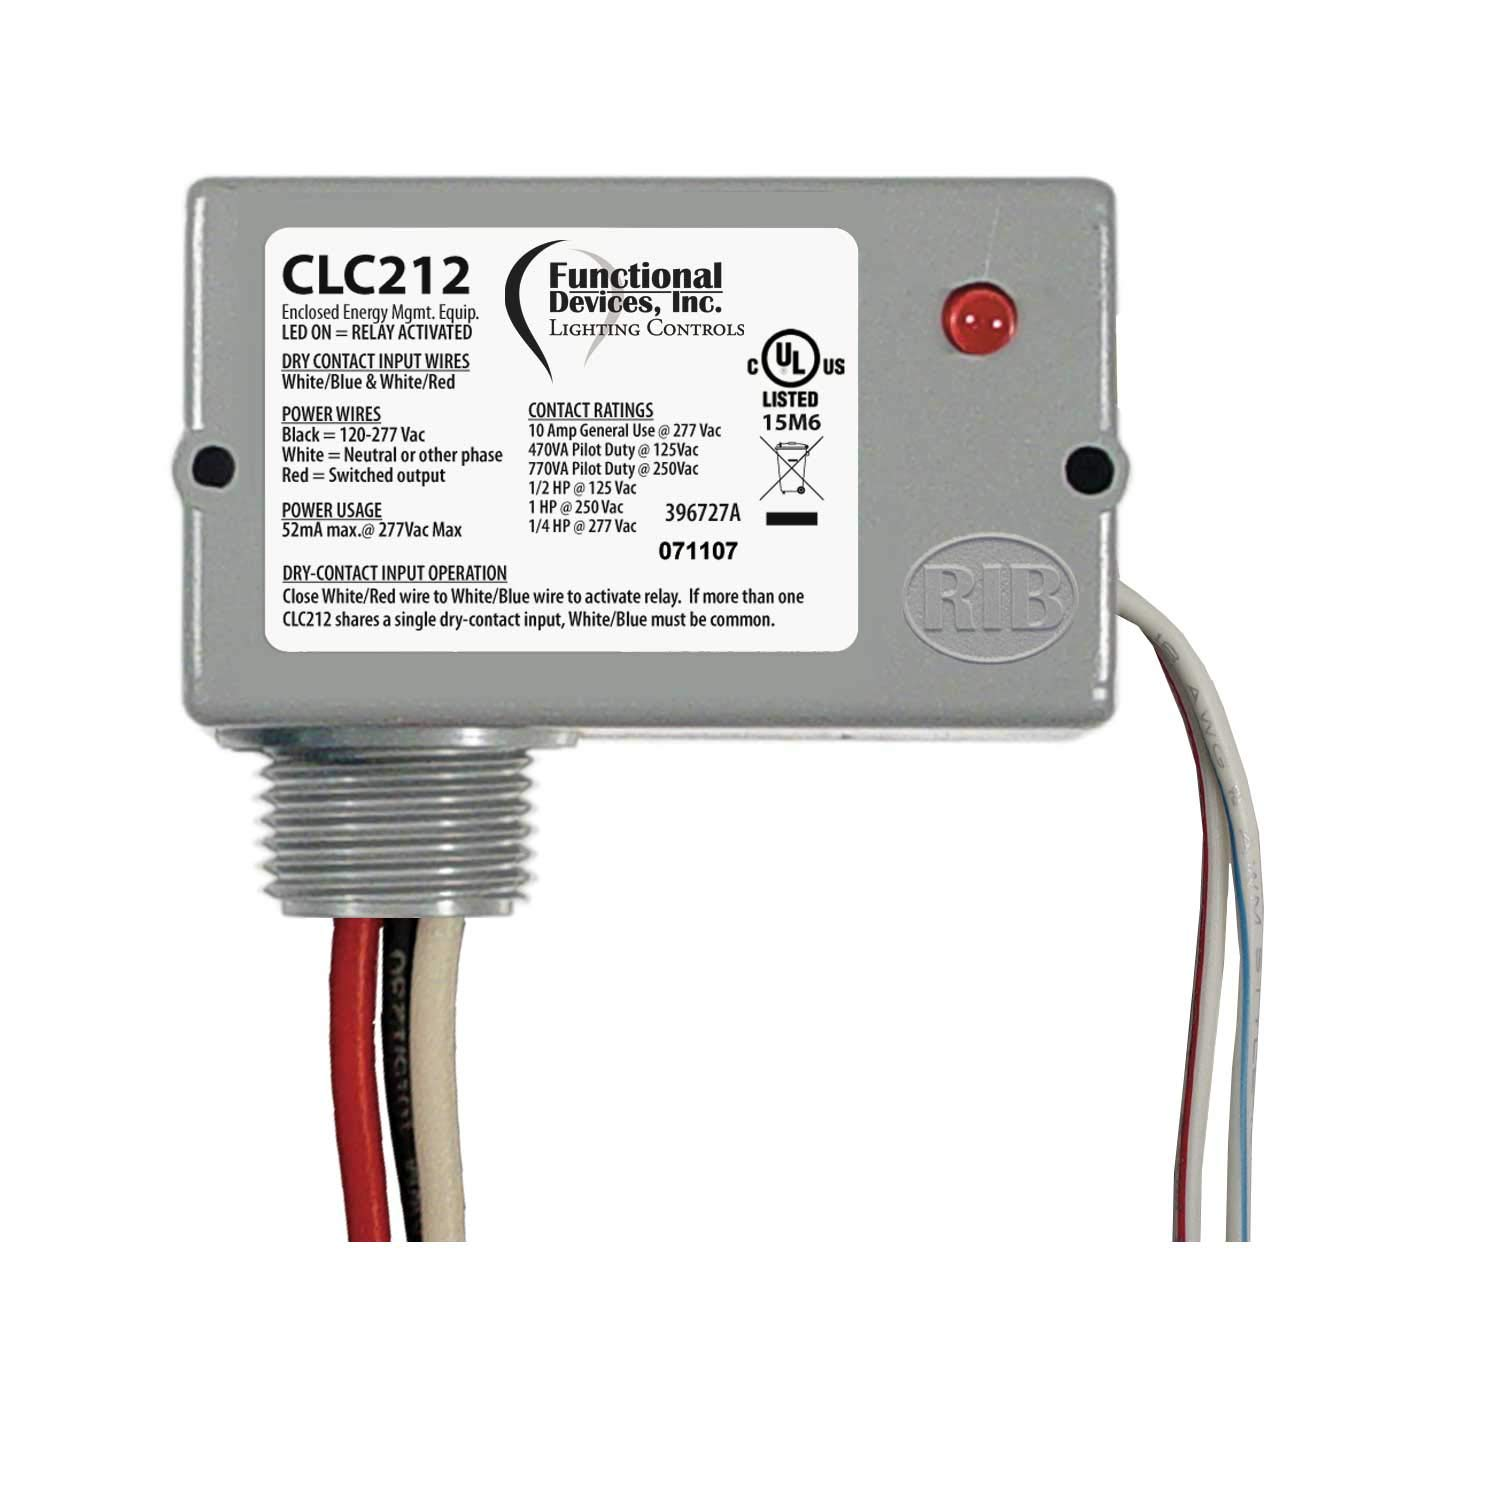 Functional Devices CLC212 Closet Light Controller Relay, 10 Amp SPST-N/O, Separated Class 2 Dry Contact Input, 120-277 Vac Power, NEMA 1 Housing